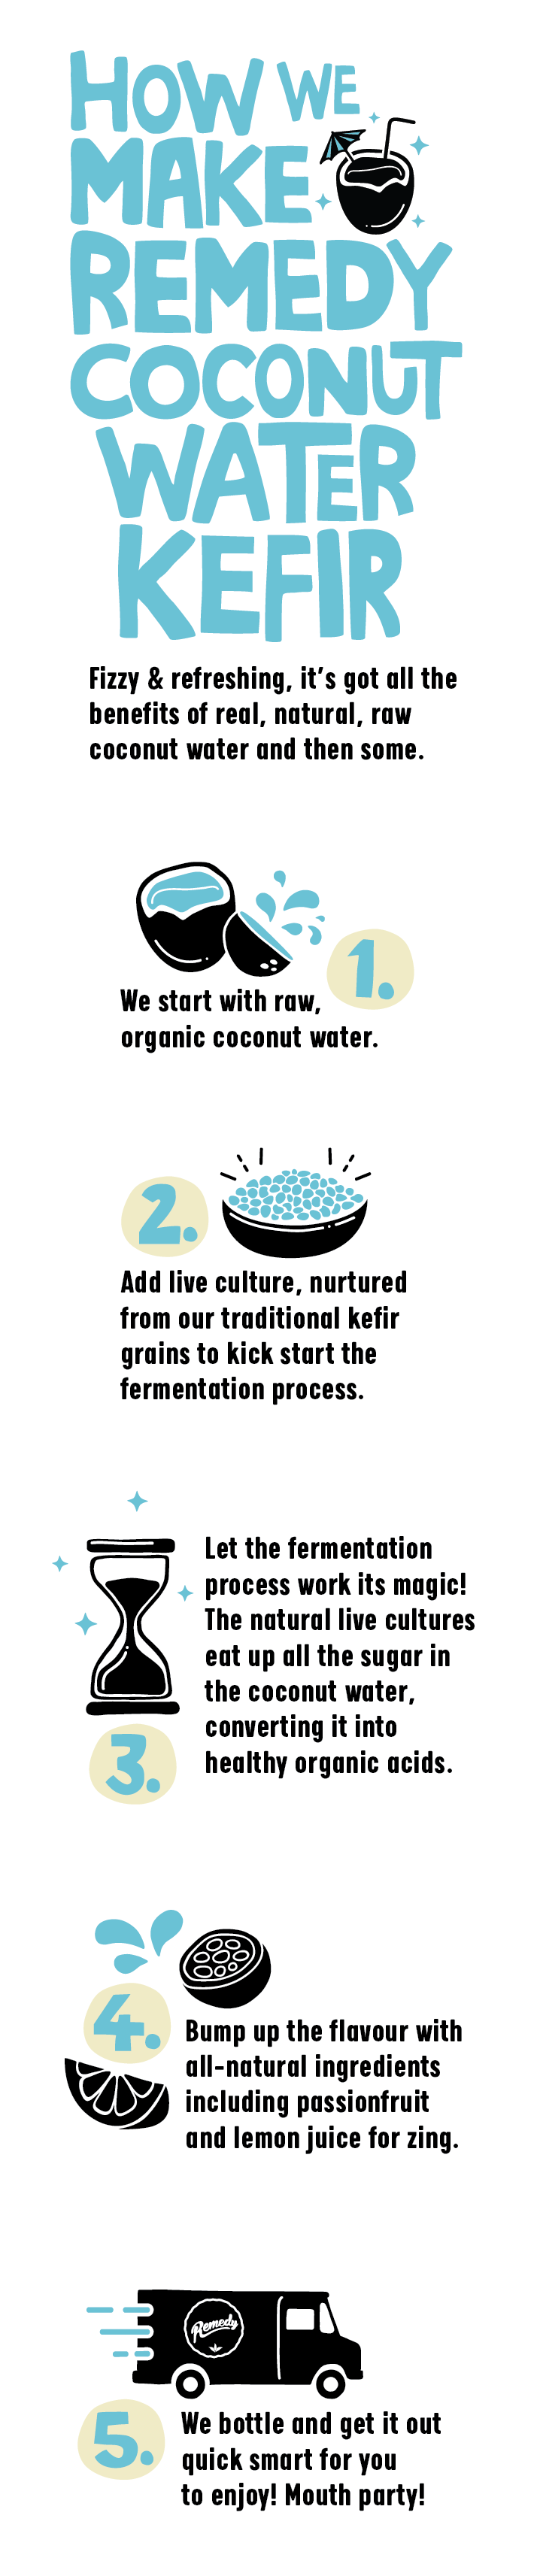 Remedy Coconut Water Kefir Brewing Process